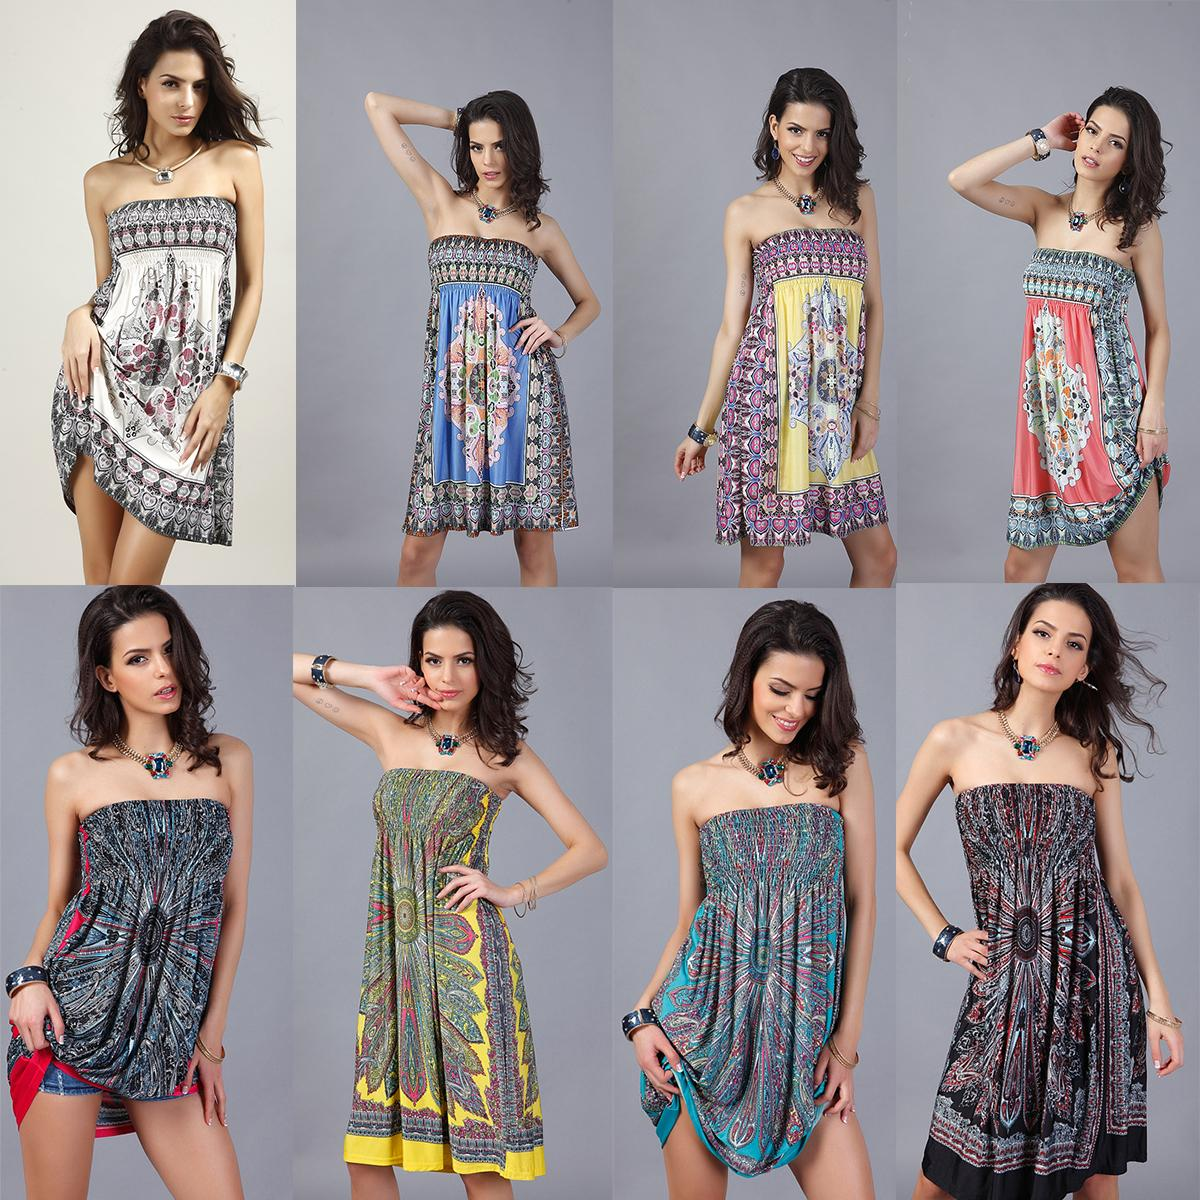 9975333a99b6 Summer Dresses For Women Plus Size Dresses Women Knee Length Dresses Cotton  Dress Off Shoulder Sexy Dresses Chiffon Beach Dress Dress For A Cocktail  Party ...